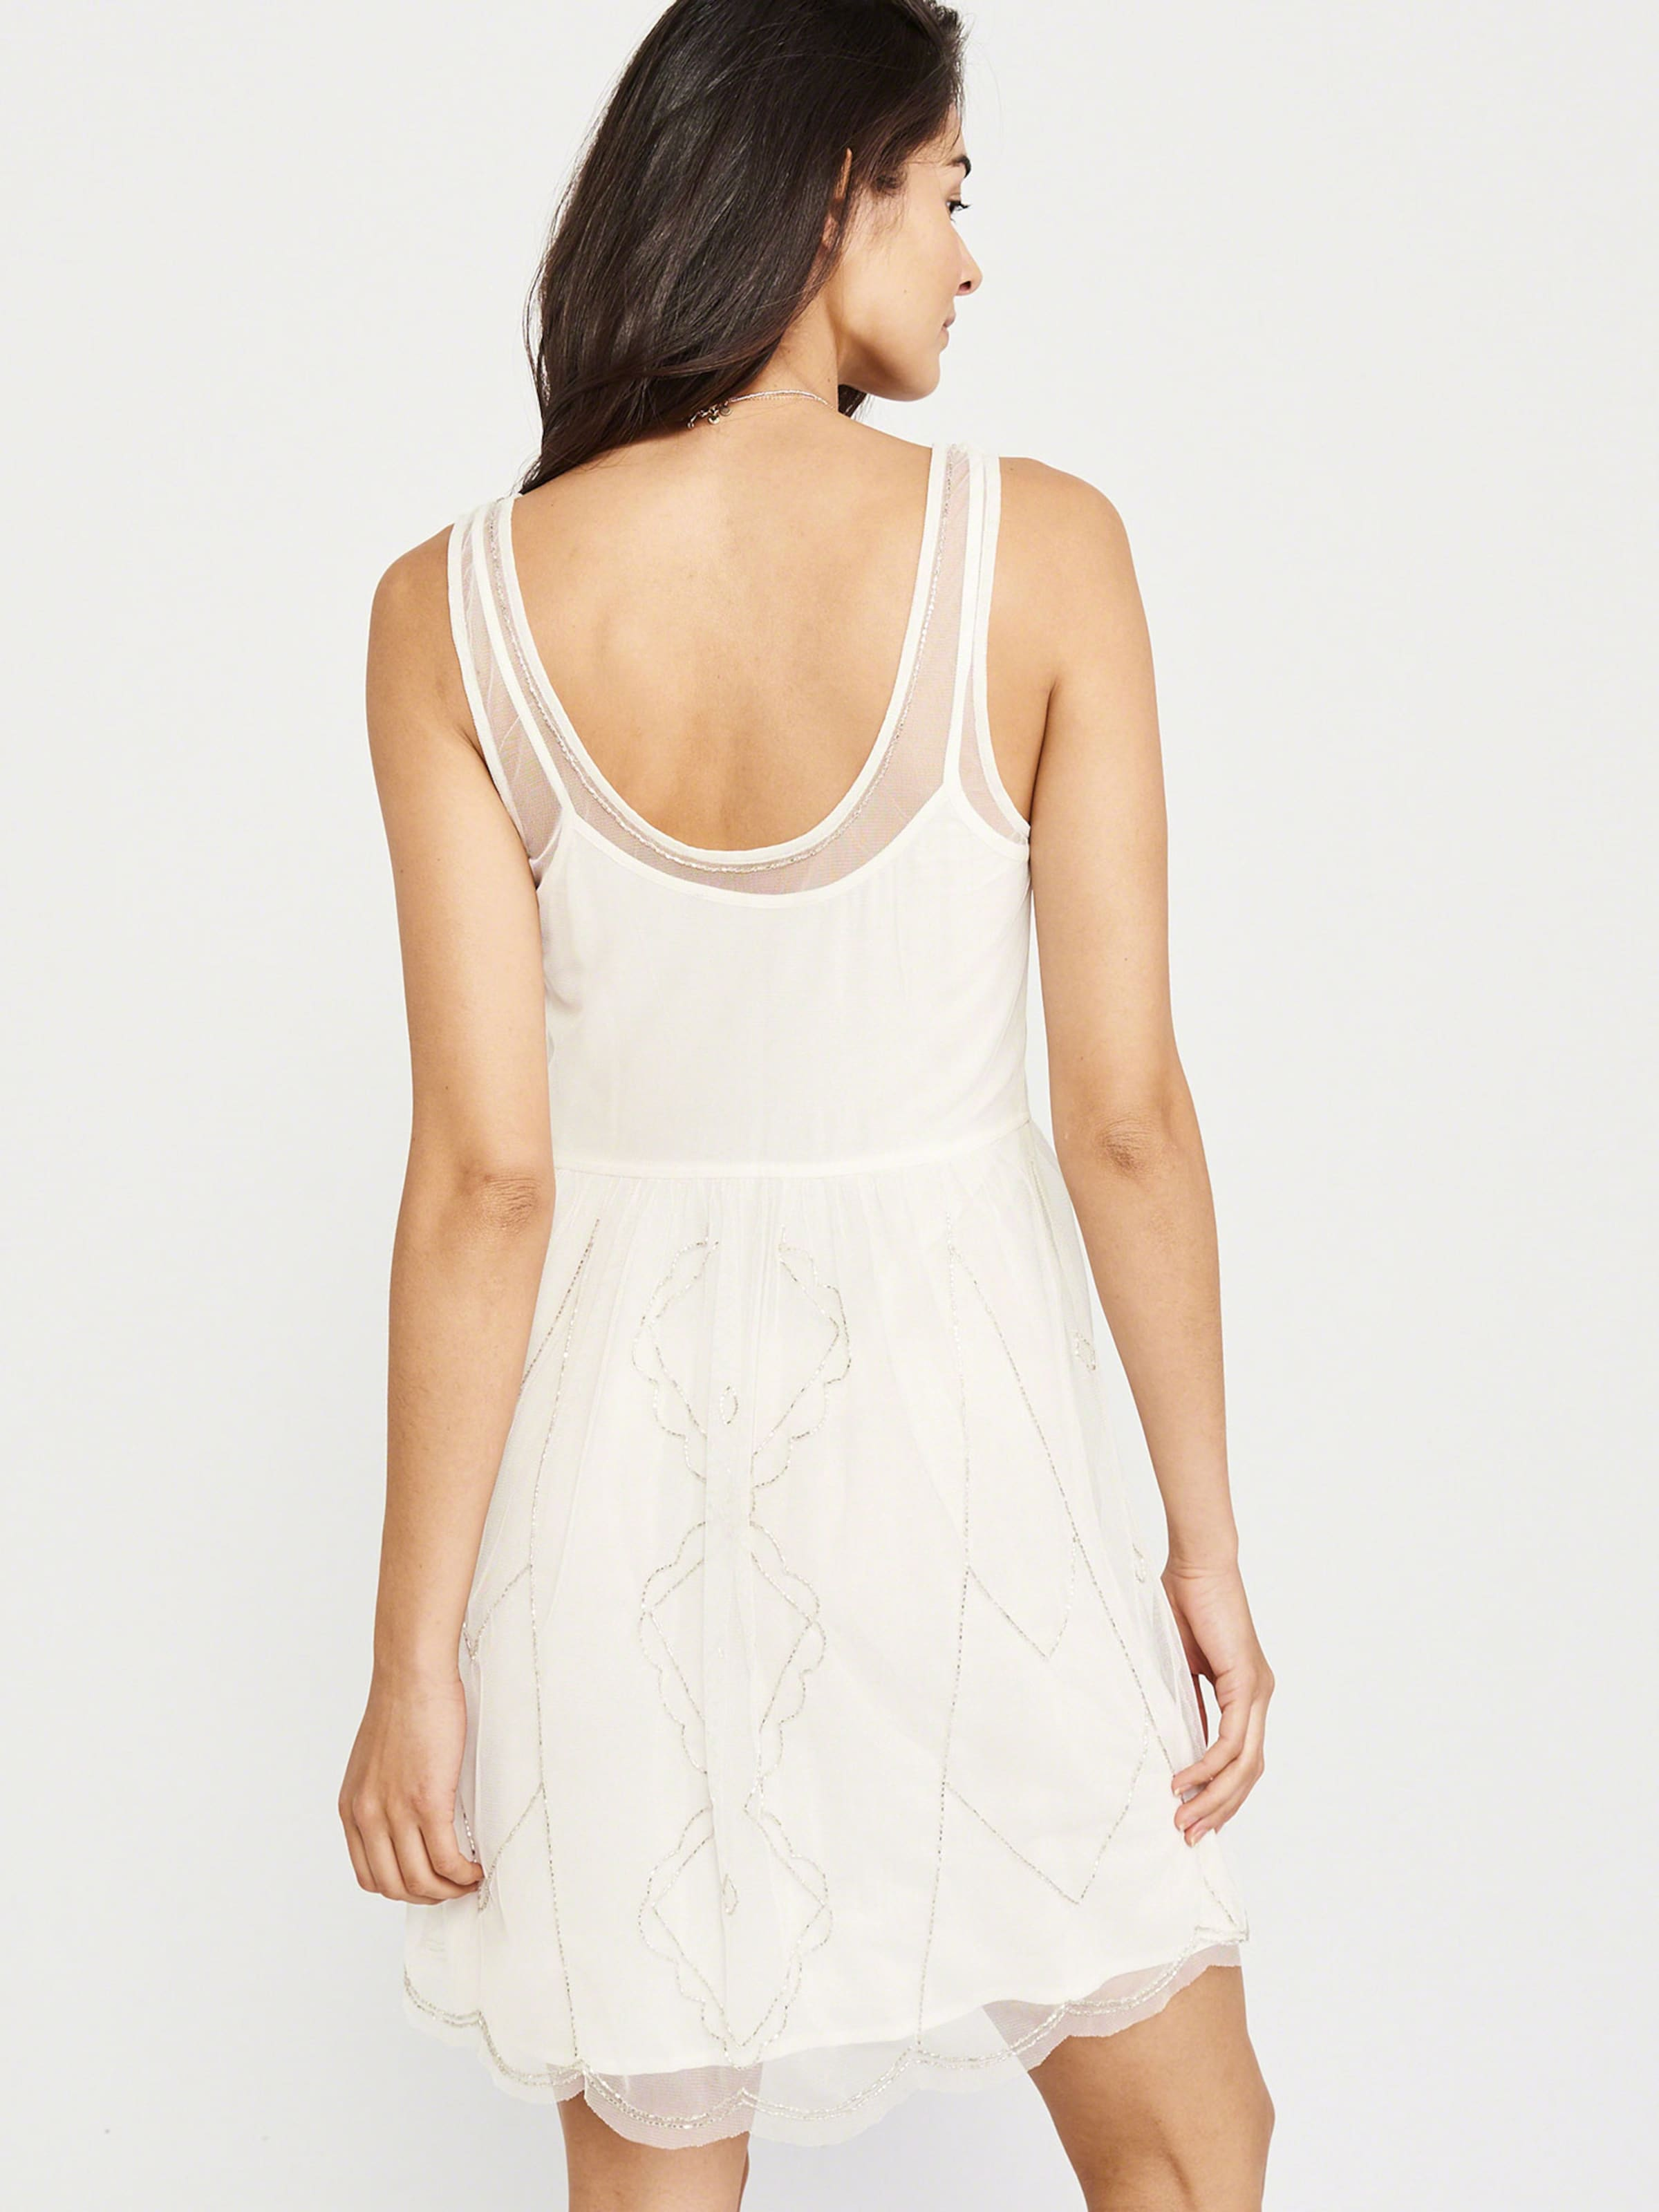 'sleeveless En Fitch Dres' Blanc Shine Party Naturel Robe Abercrombieamp; IED92H